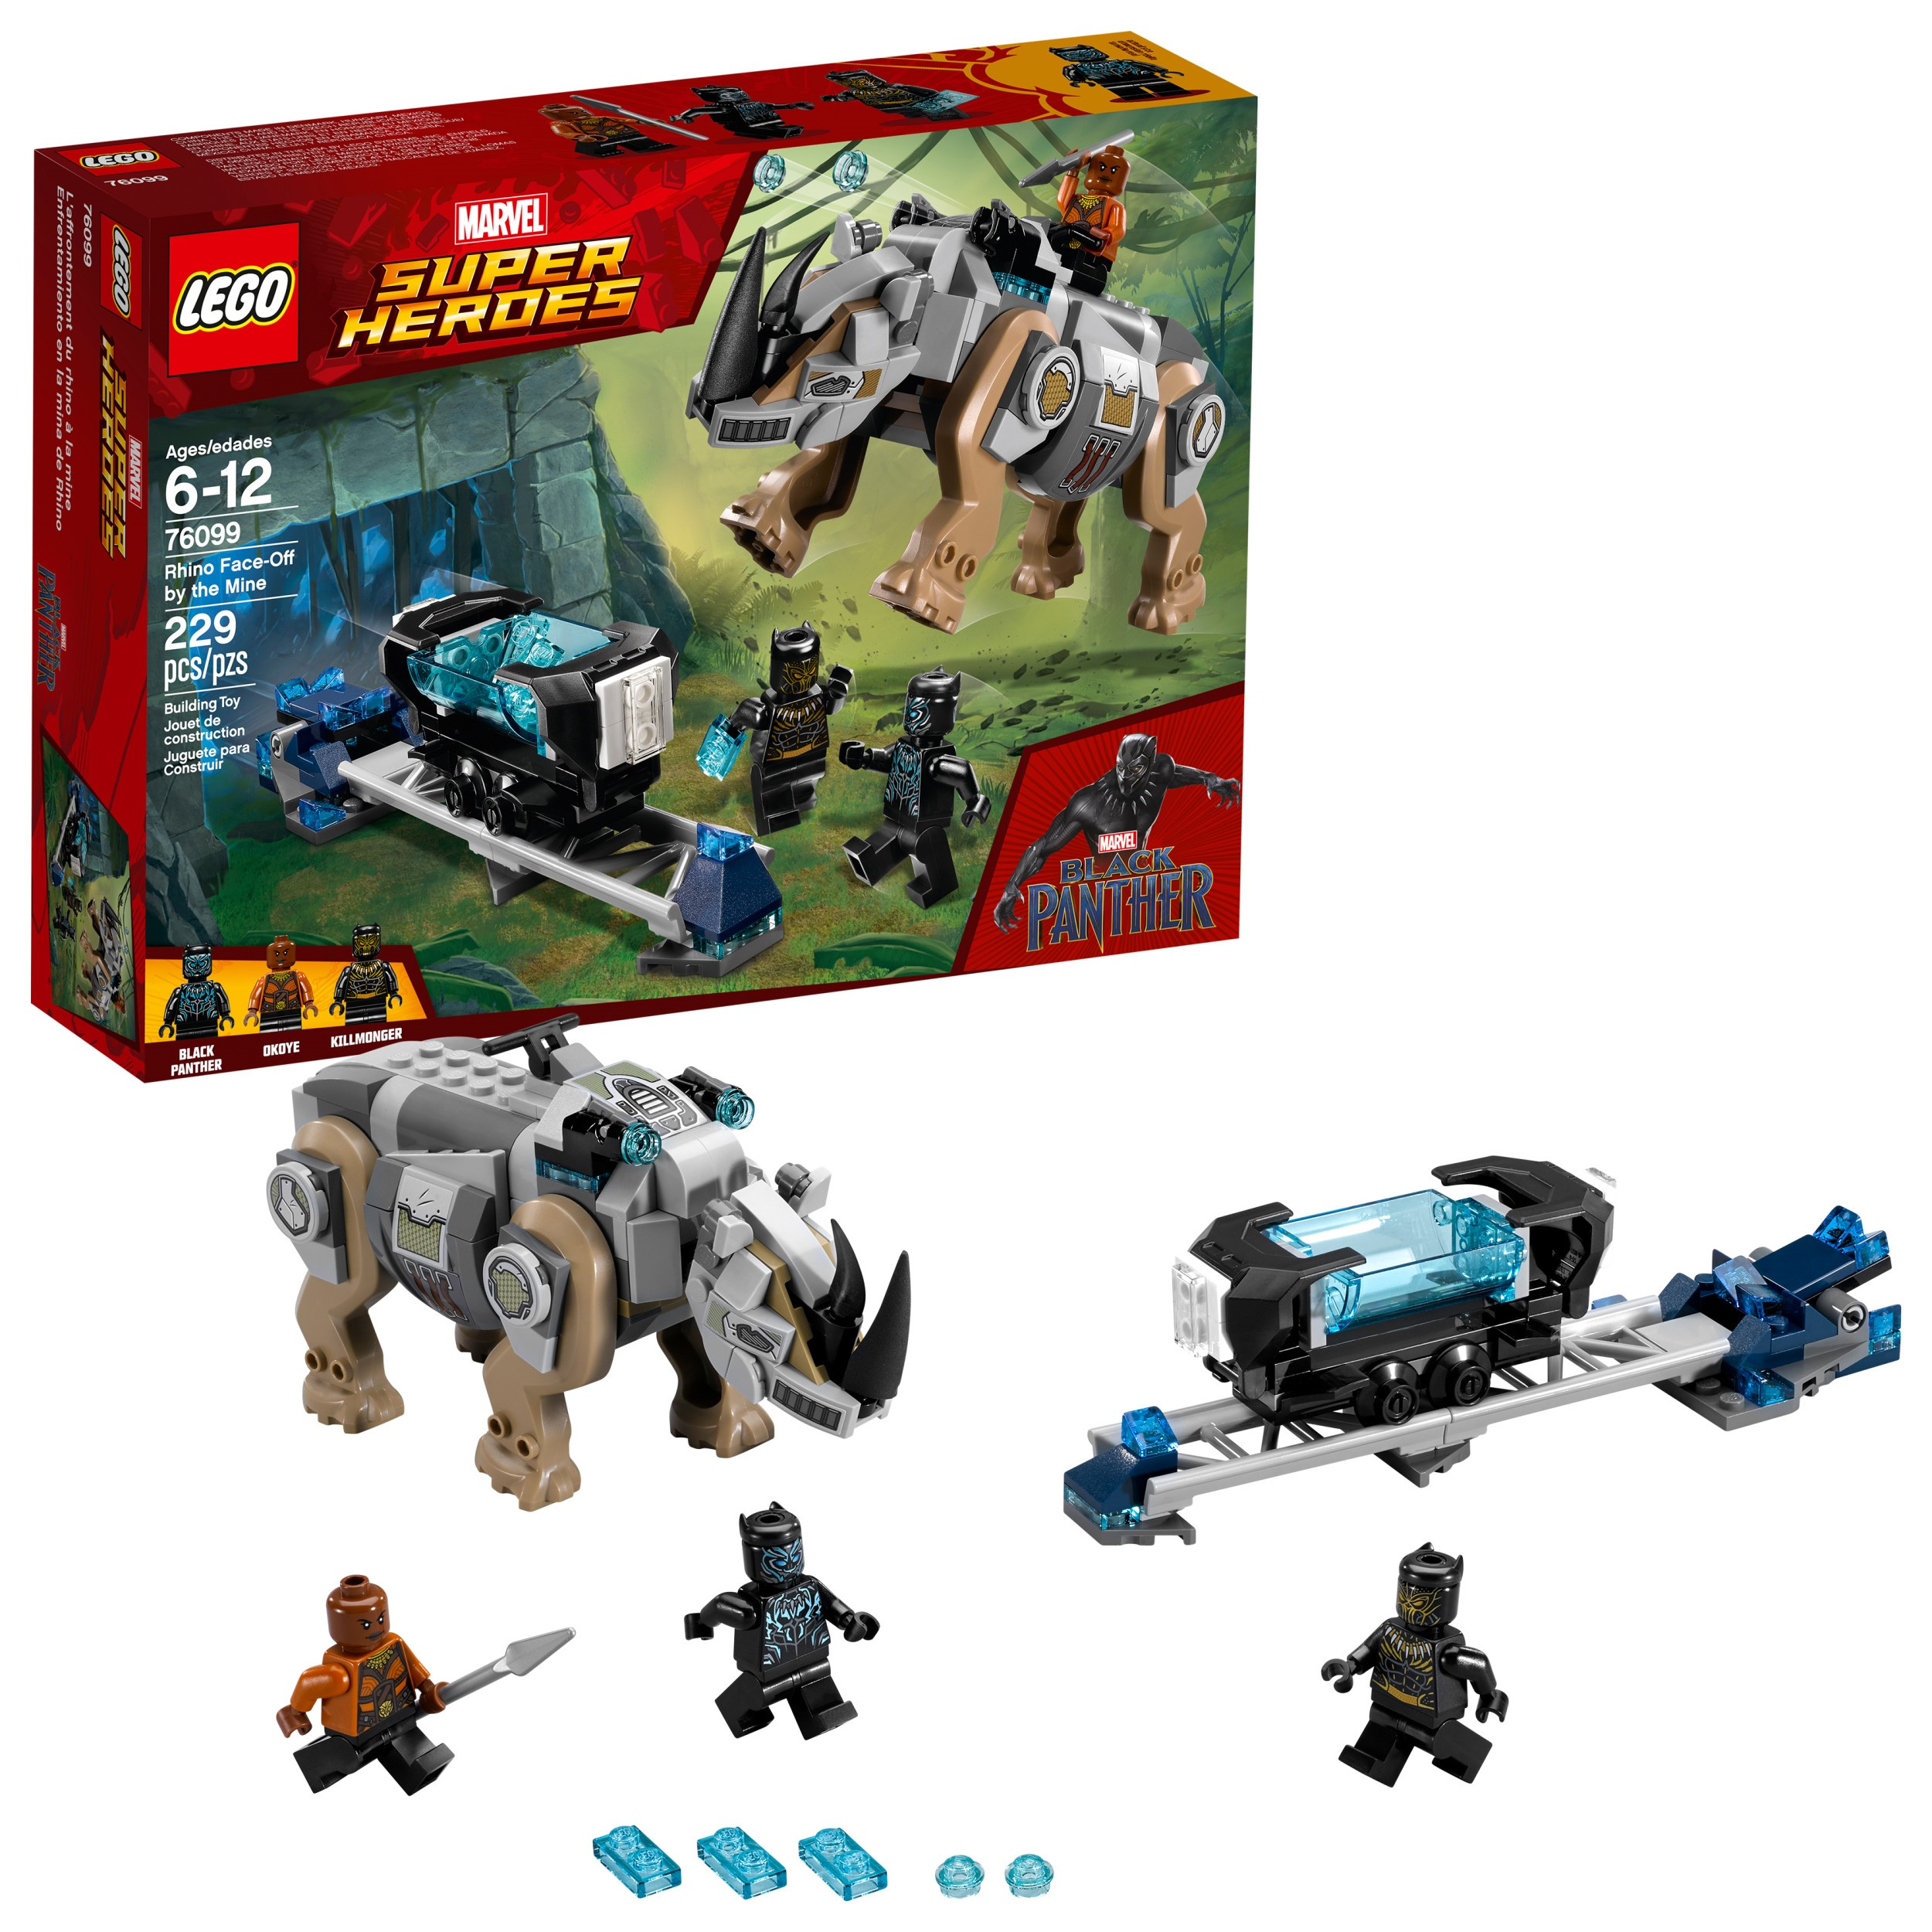 LEGO Super Heroes Black Panther Rhino Face-Off by the Mine 76099